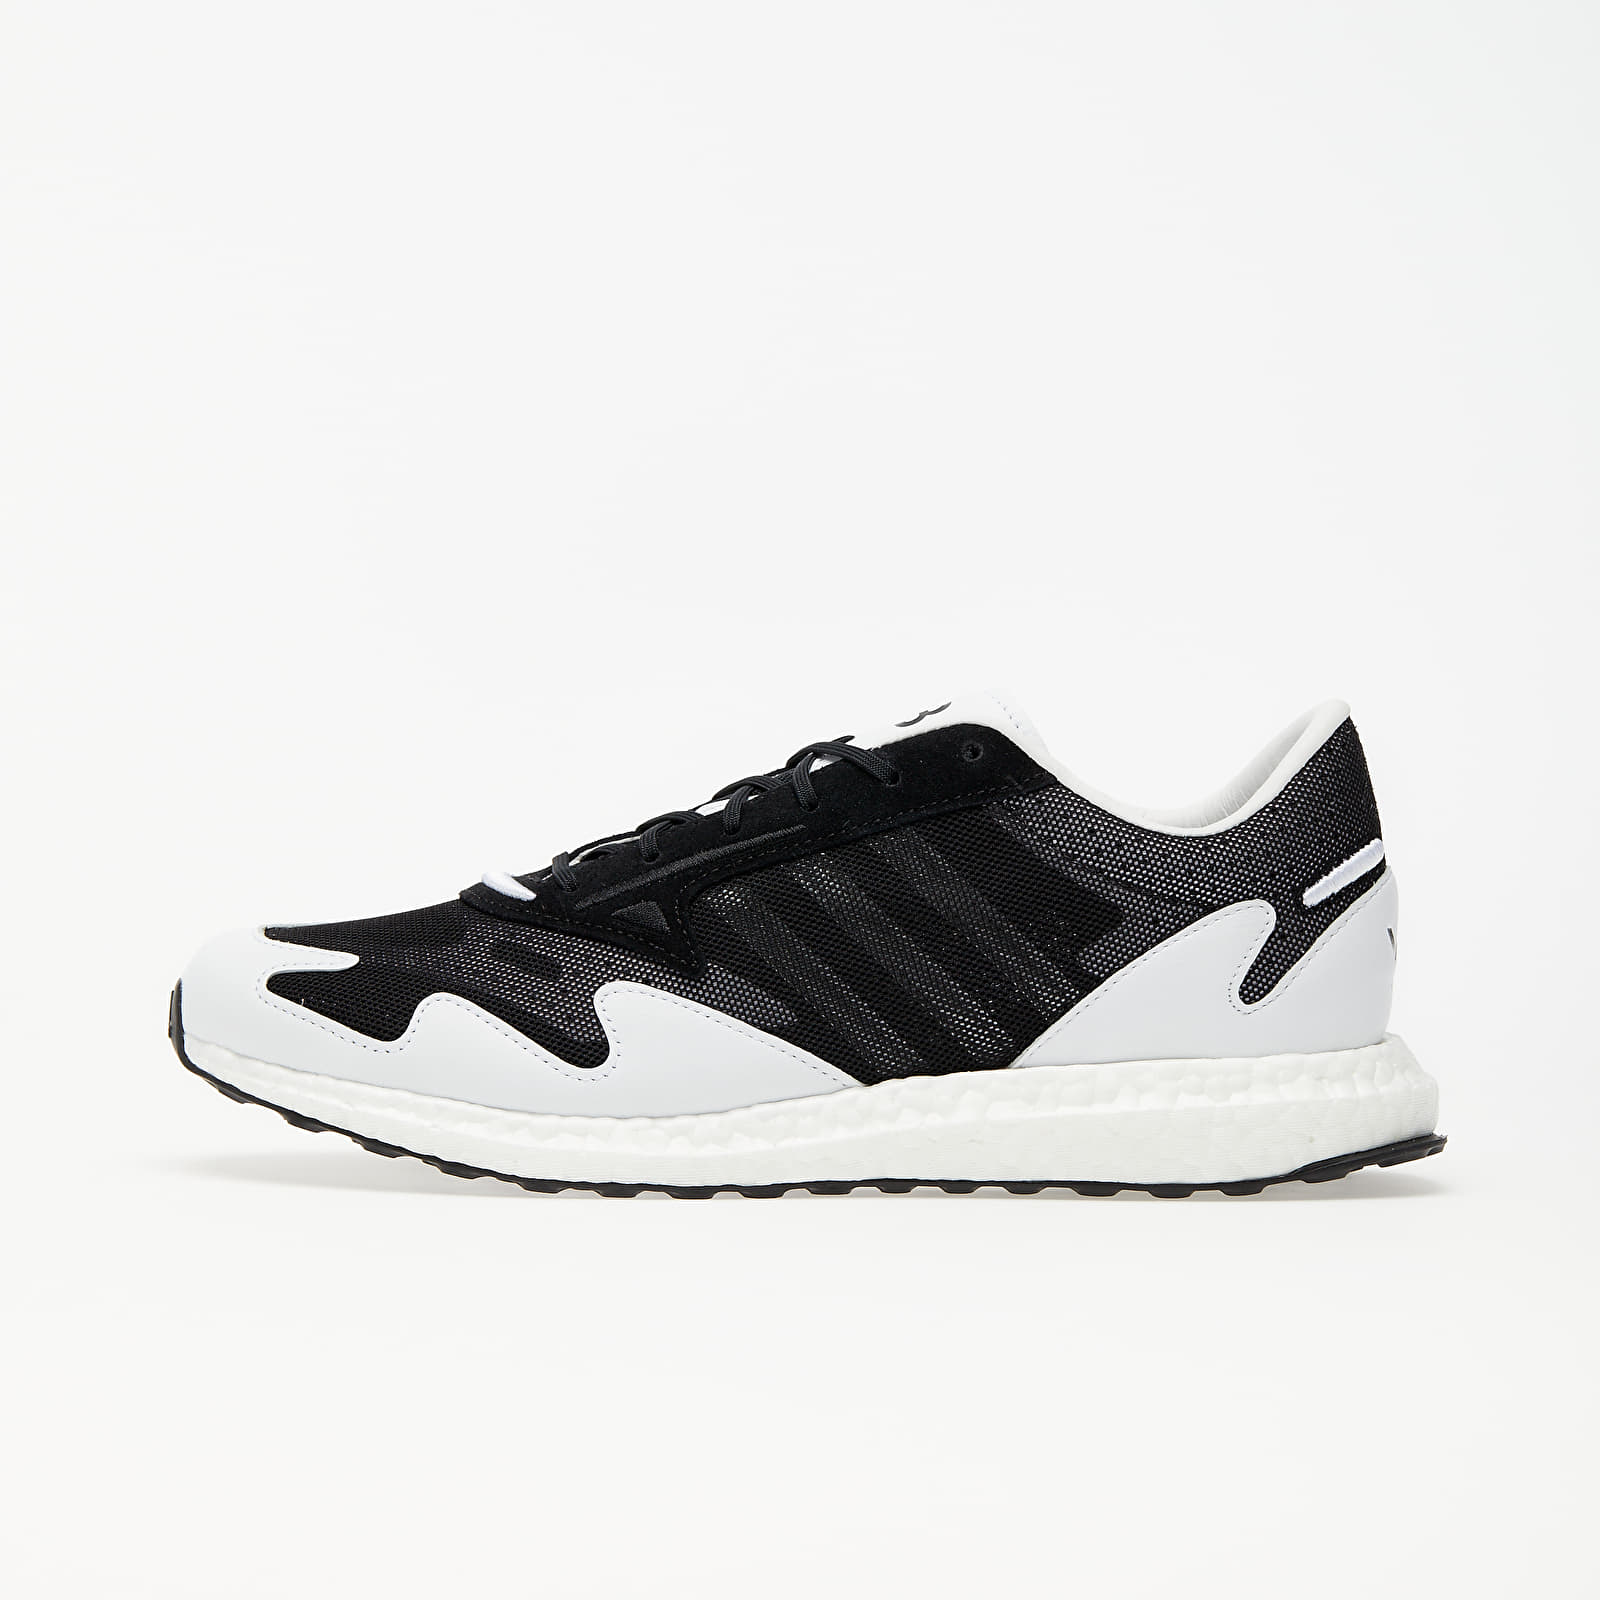 Men's shoes Y-3 Rhisu Run Black/ None/ None